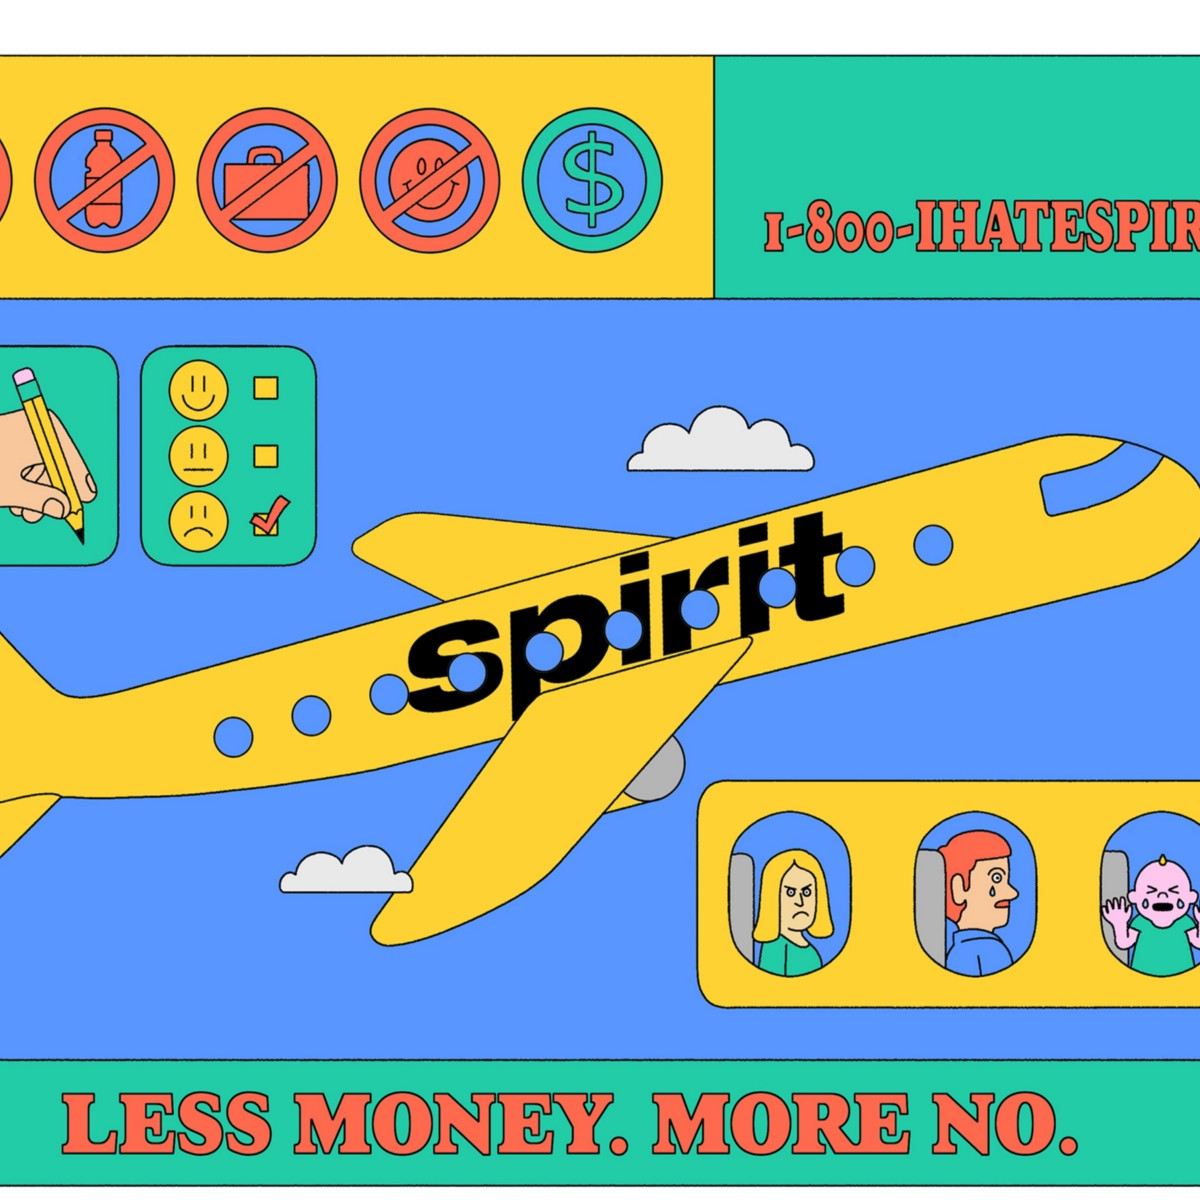 If Everyone Hates Spirit Airlines, How Is It Making So Much Money?